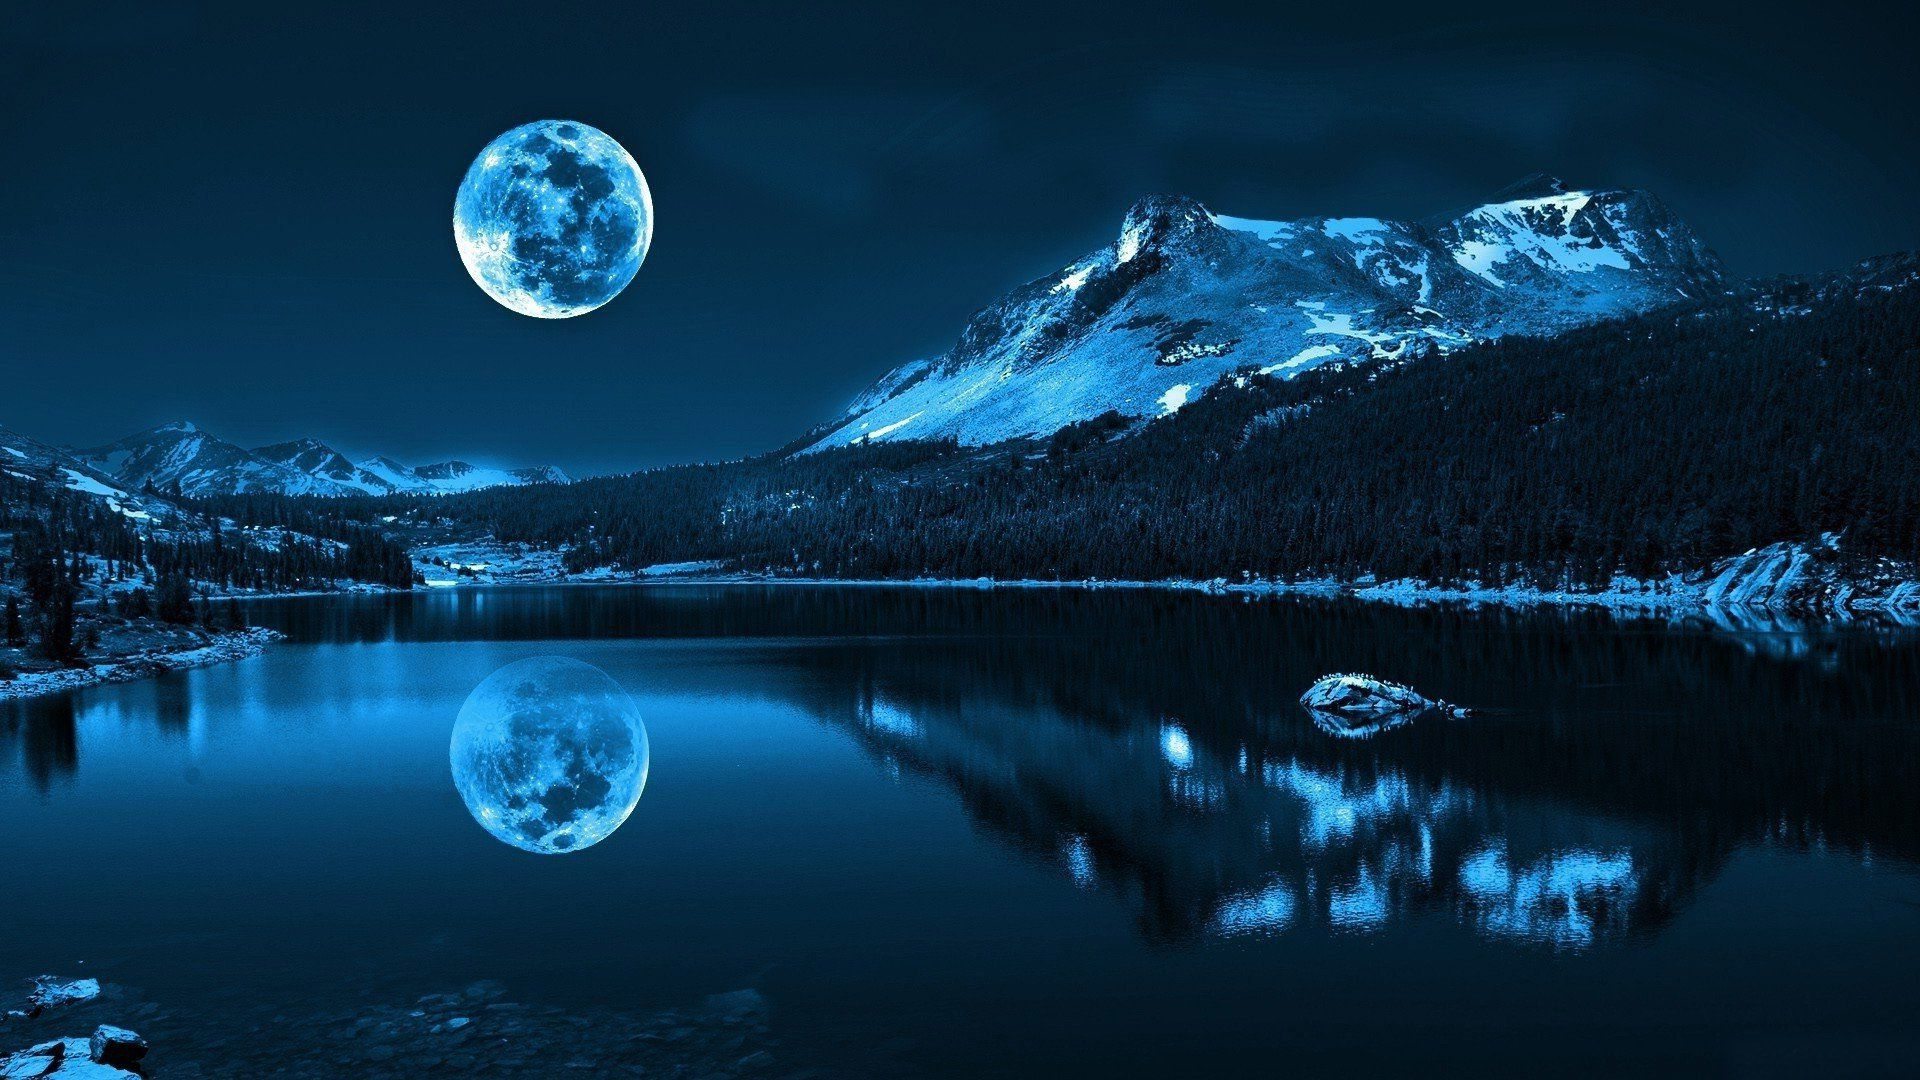 Download Night Mountain Wallpaper 1080p For Free Wallpaper Monodomo In 2020 Night Scenery Nature Wallpaper Mountain Wallpaper